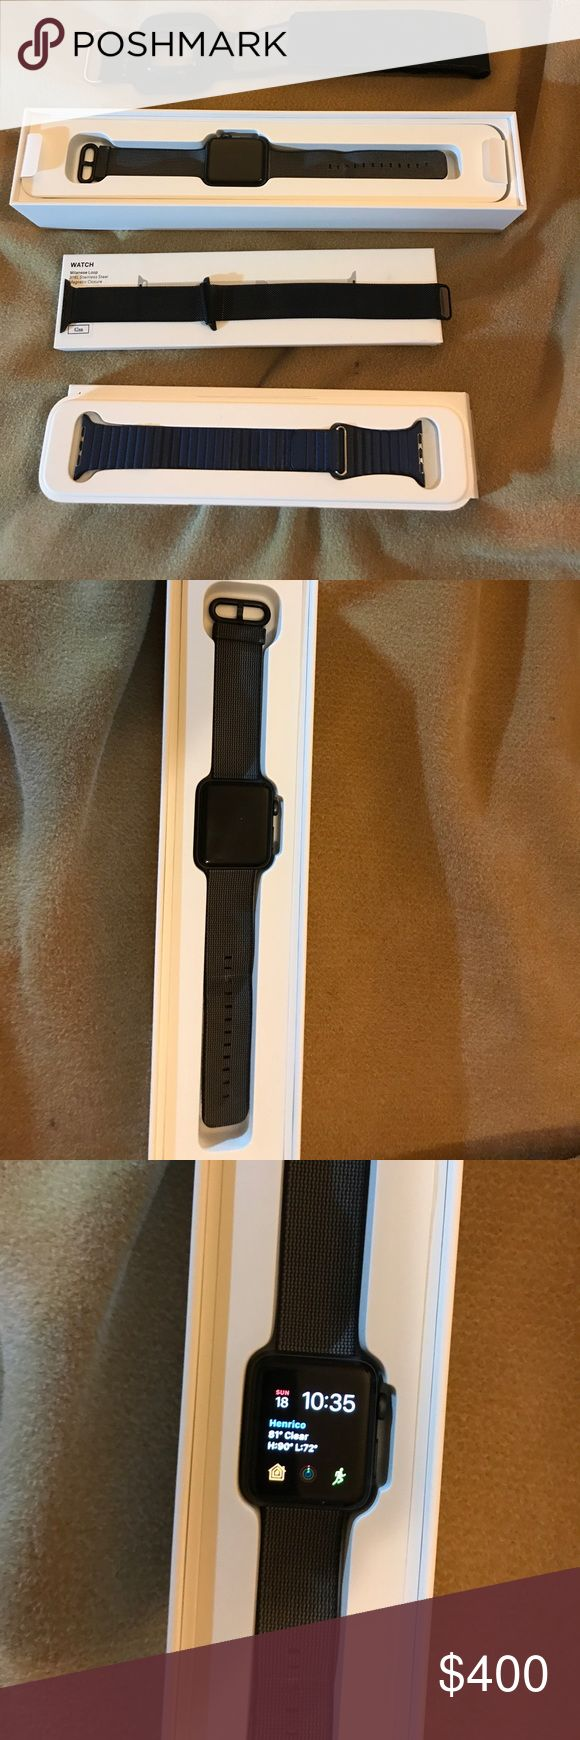 Apple Watch Space Grey Aluminum Series 2 42mm This sale includes the following: Apple Watch Space Grey Aluminum series 2 with Apple black and grey nylon, Apple navy blue leather loop band, 3rd party black Milanese loop band, Apple Apple Watch charging cable, TwelveSouth ActionSleeve, Apple 5W USB wall adapter, & AppleCare+ (includes two incidents for damage and 24/7 support). These items have been used previously. Activation Lock has been removed i.e. this isn't locked to any Apple ID. Also…